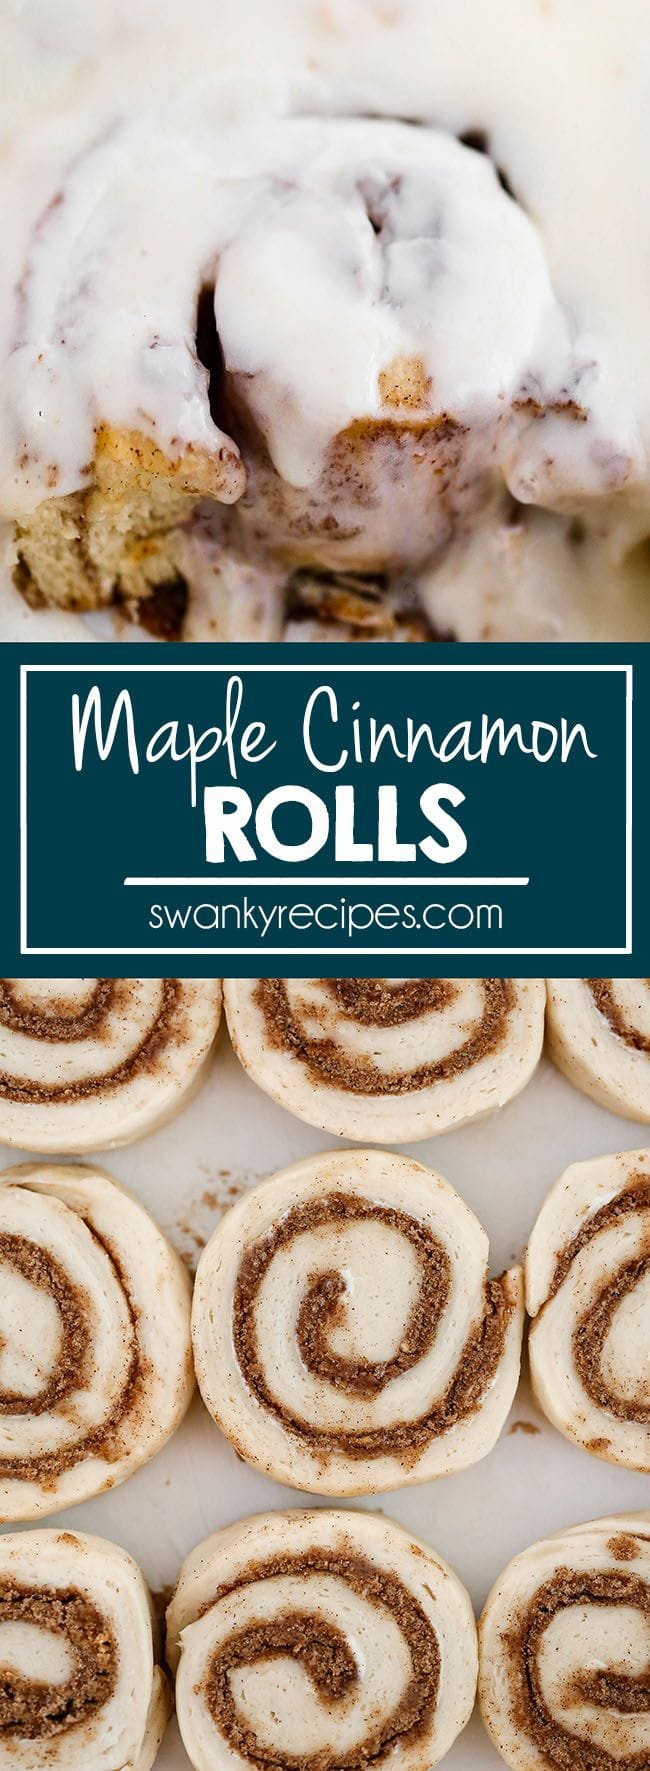 Soft and Fluffy Cinnamon Rolls with Maple cream cheese icing. These maple frosting cinnamon rolls recipe are the BEST EVER and perfect for Christmas breakfast.